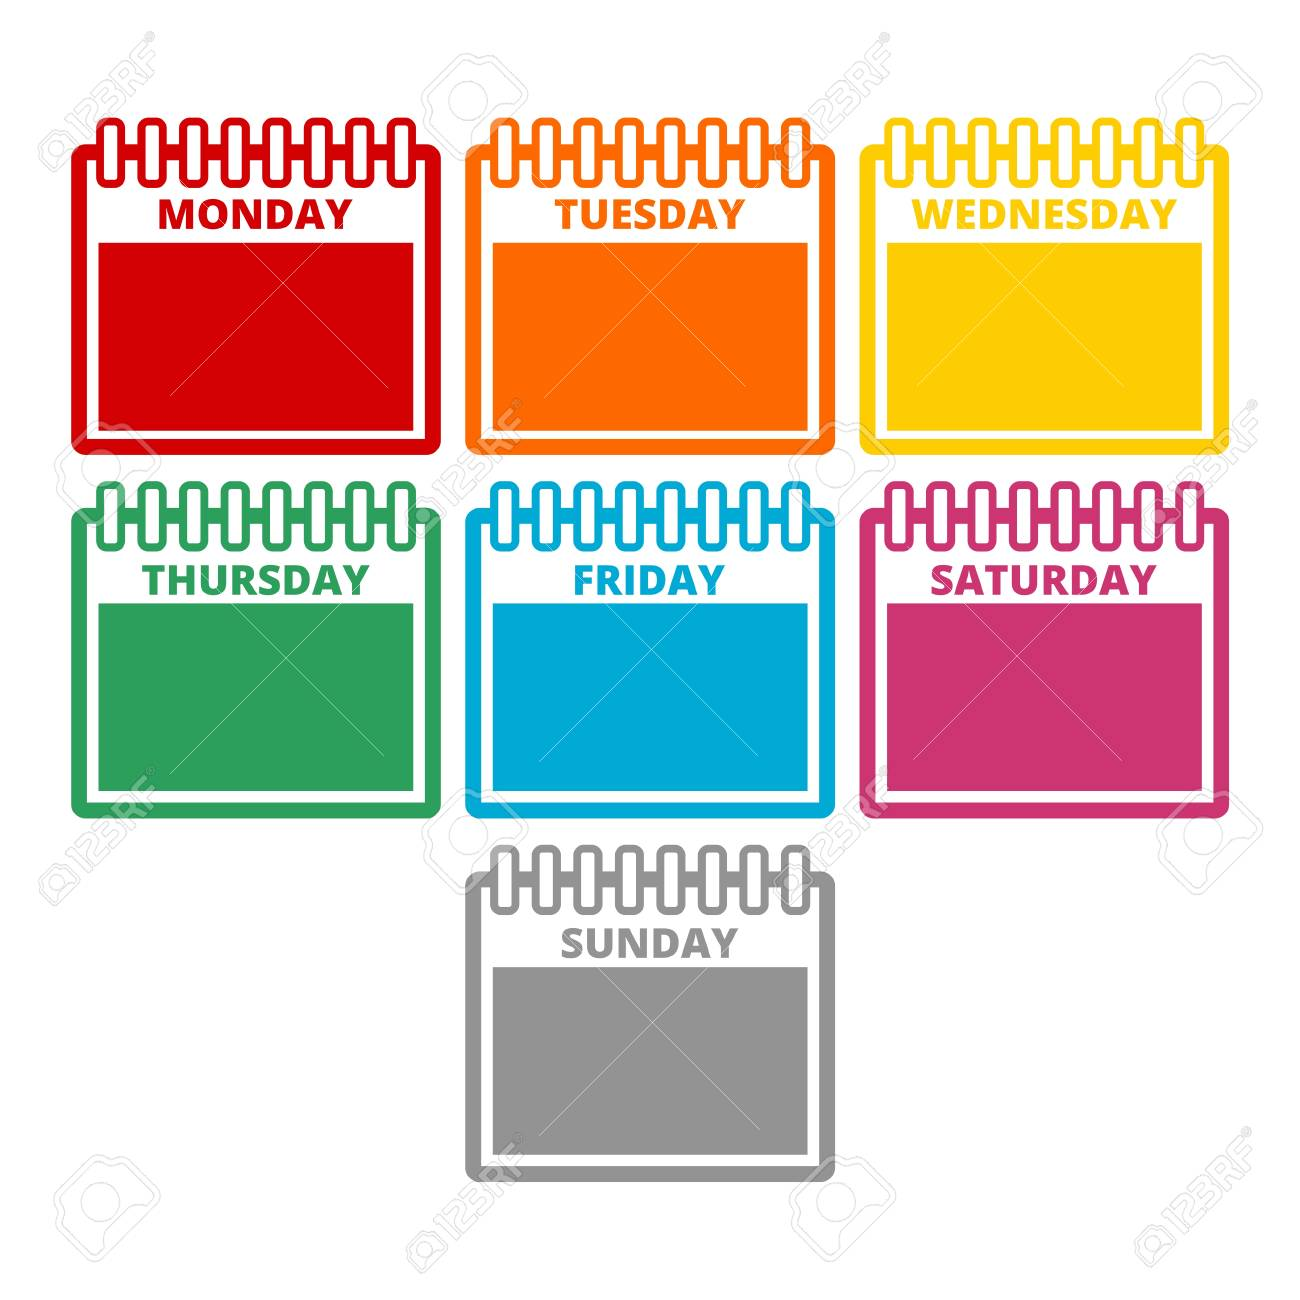 Days of the week, Calendar sheets with the days of the week.